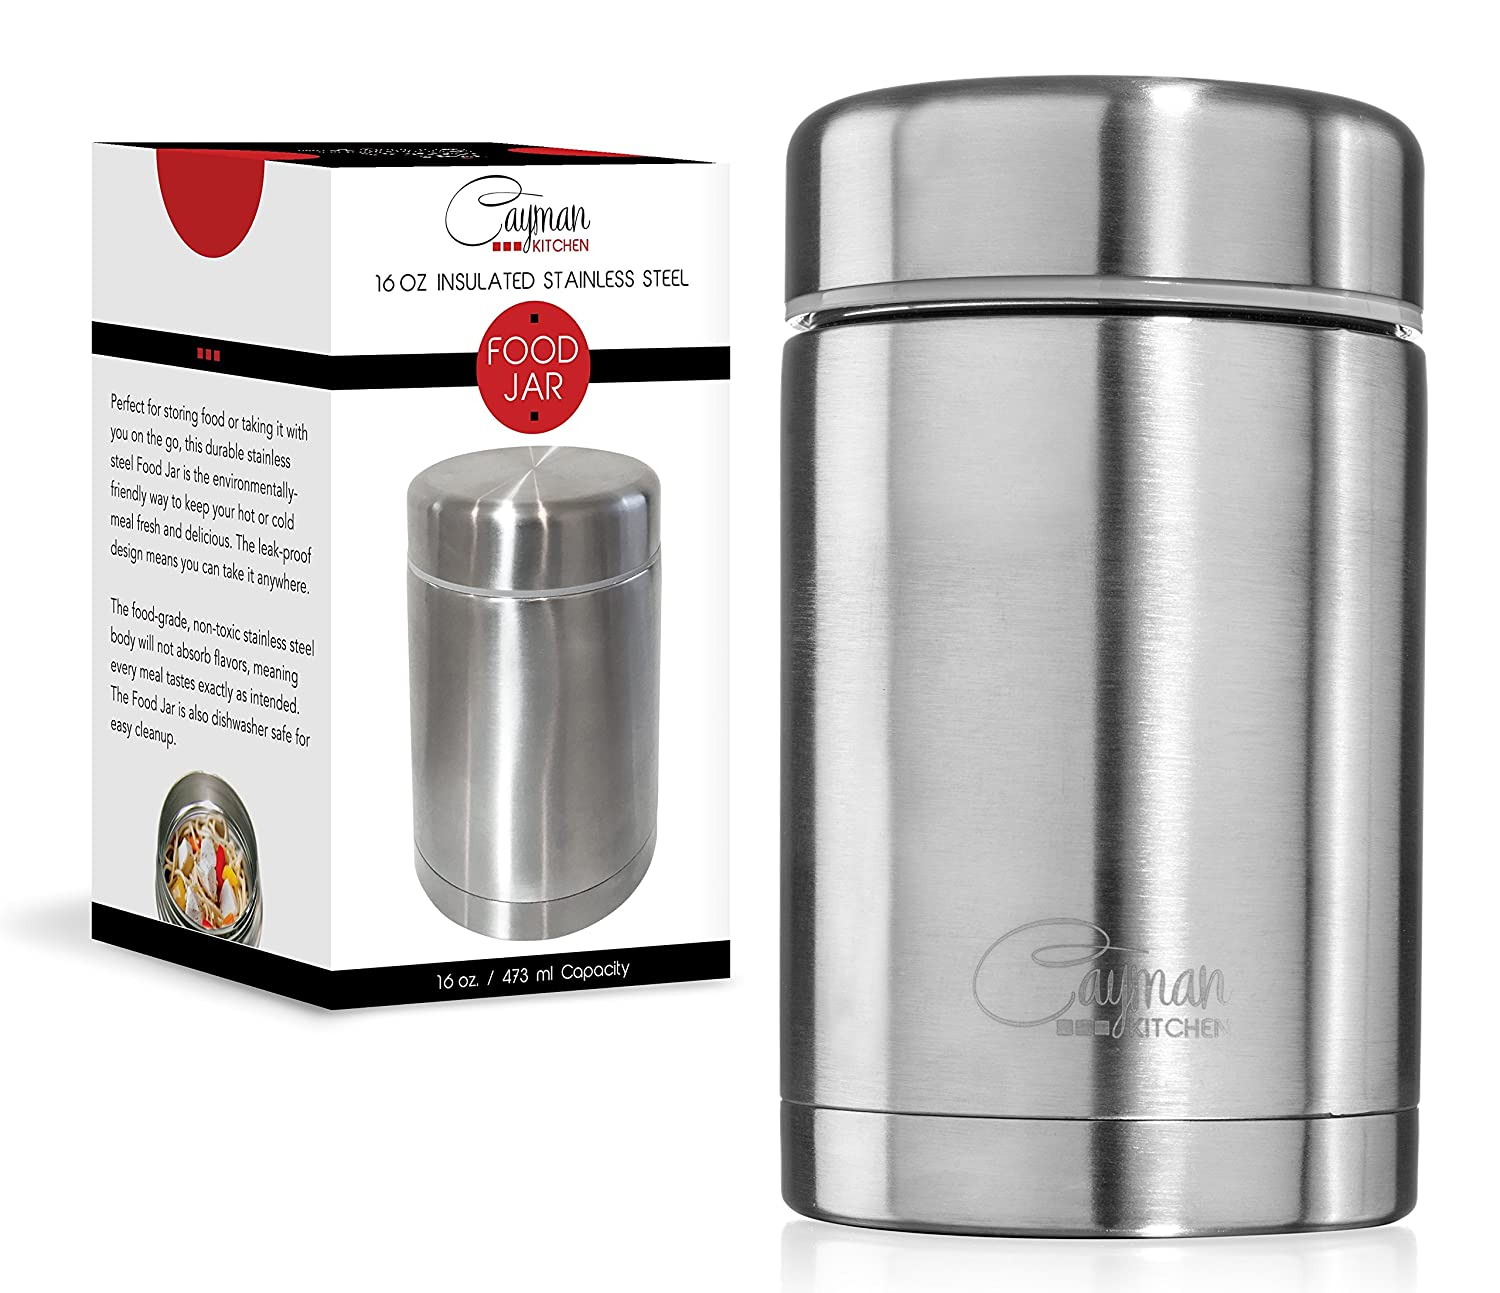 Cayman kitchen 470 ml insulated stainless steel thermos for Perfect kitchen stainless